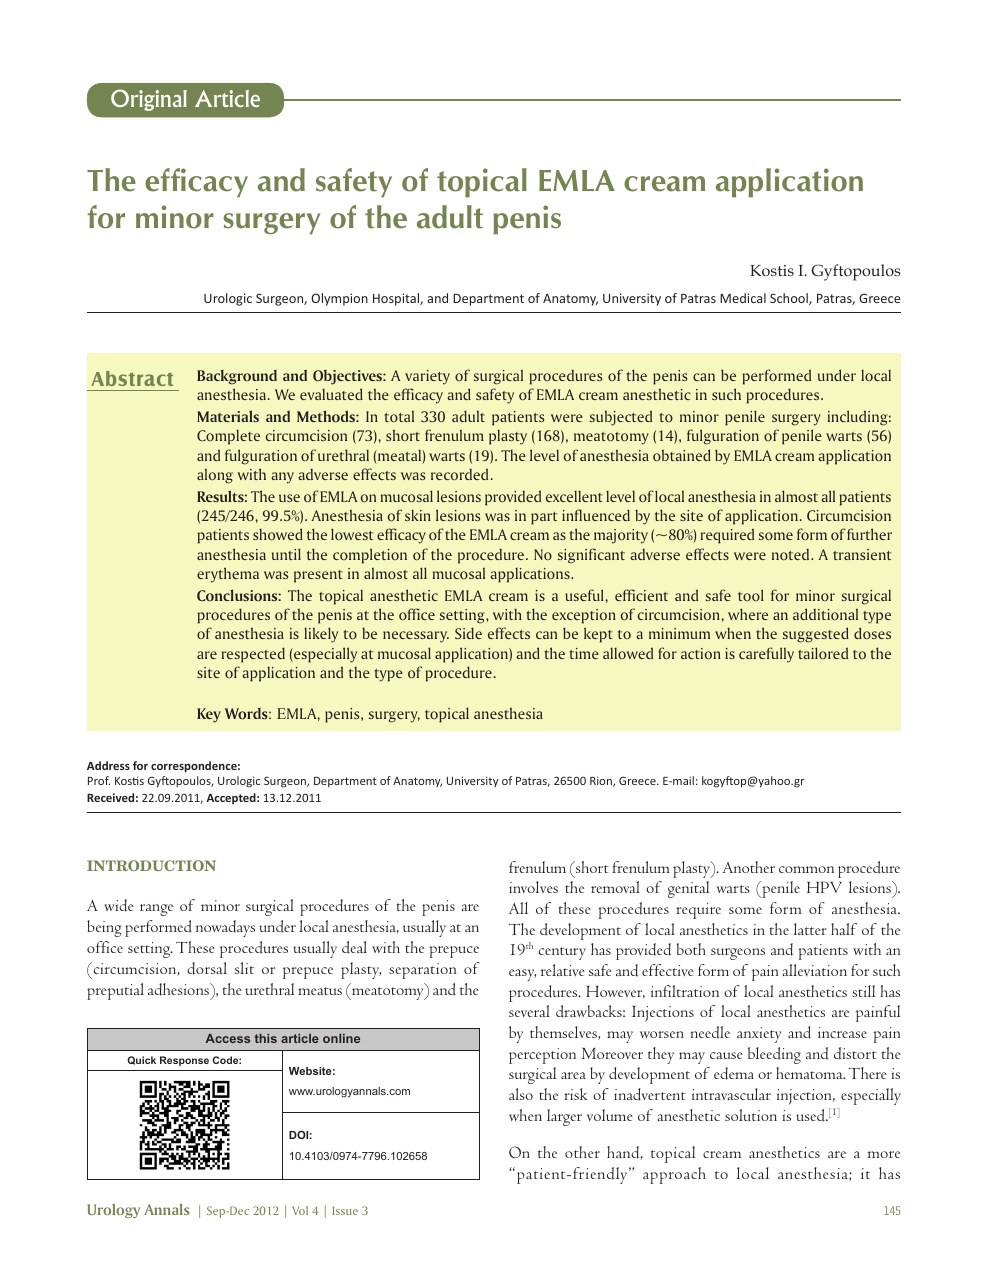 The Efficacy And Safety Of Topical Emla Cream Application For Minor